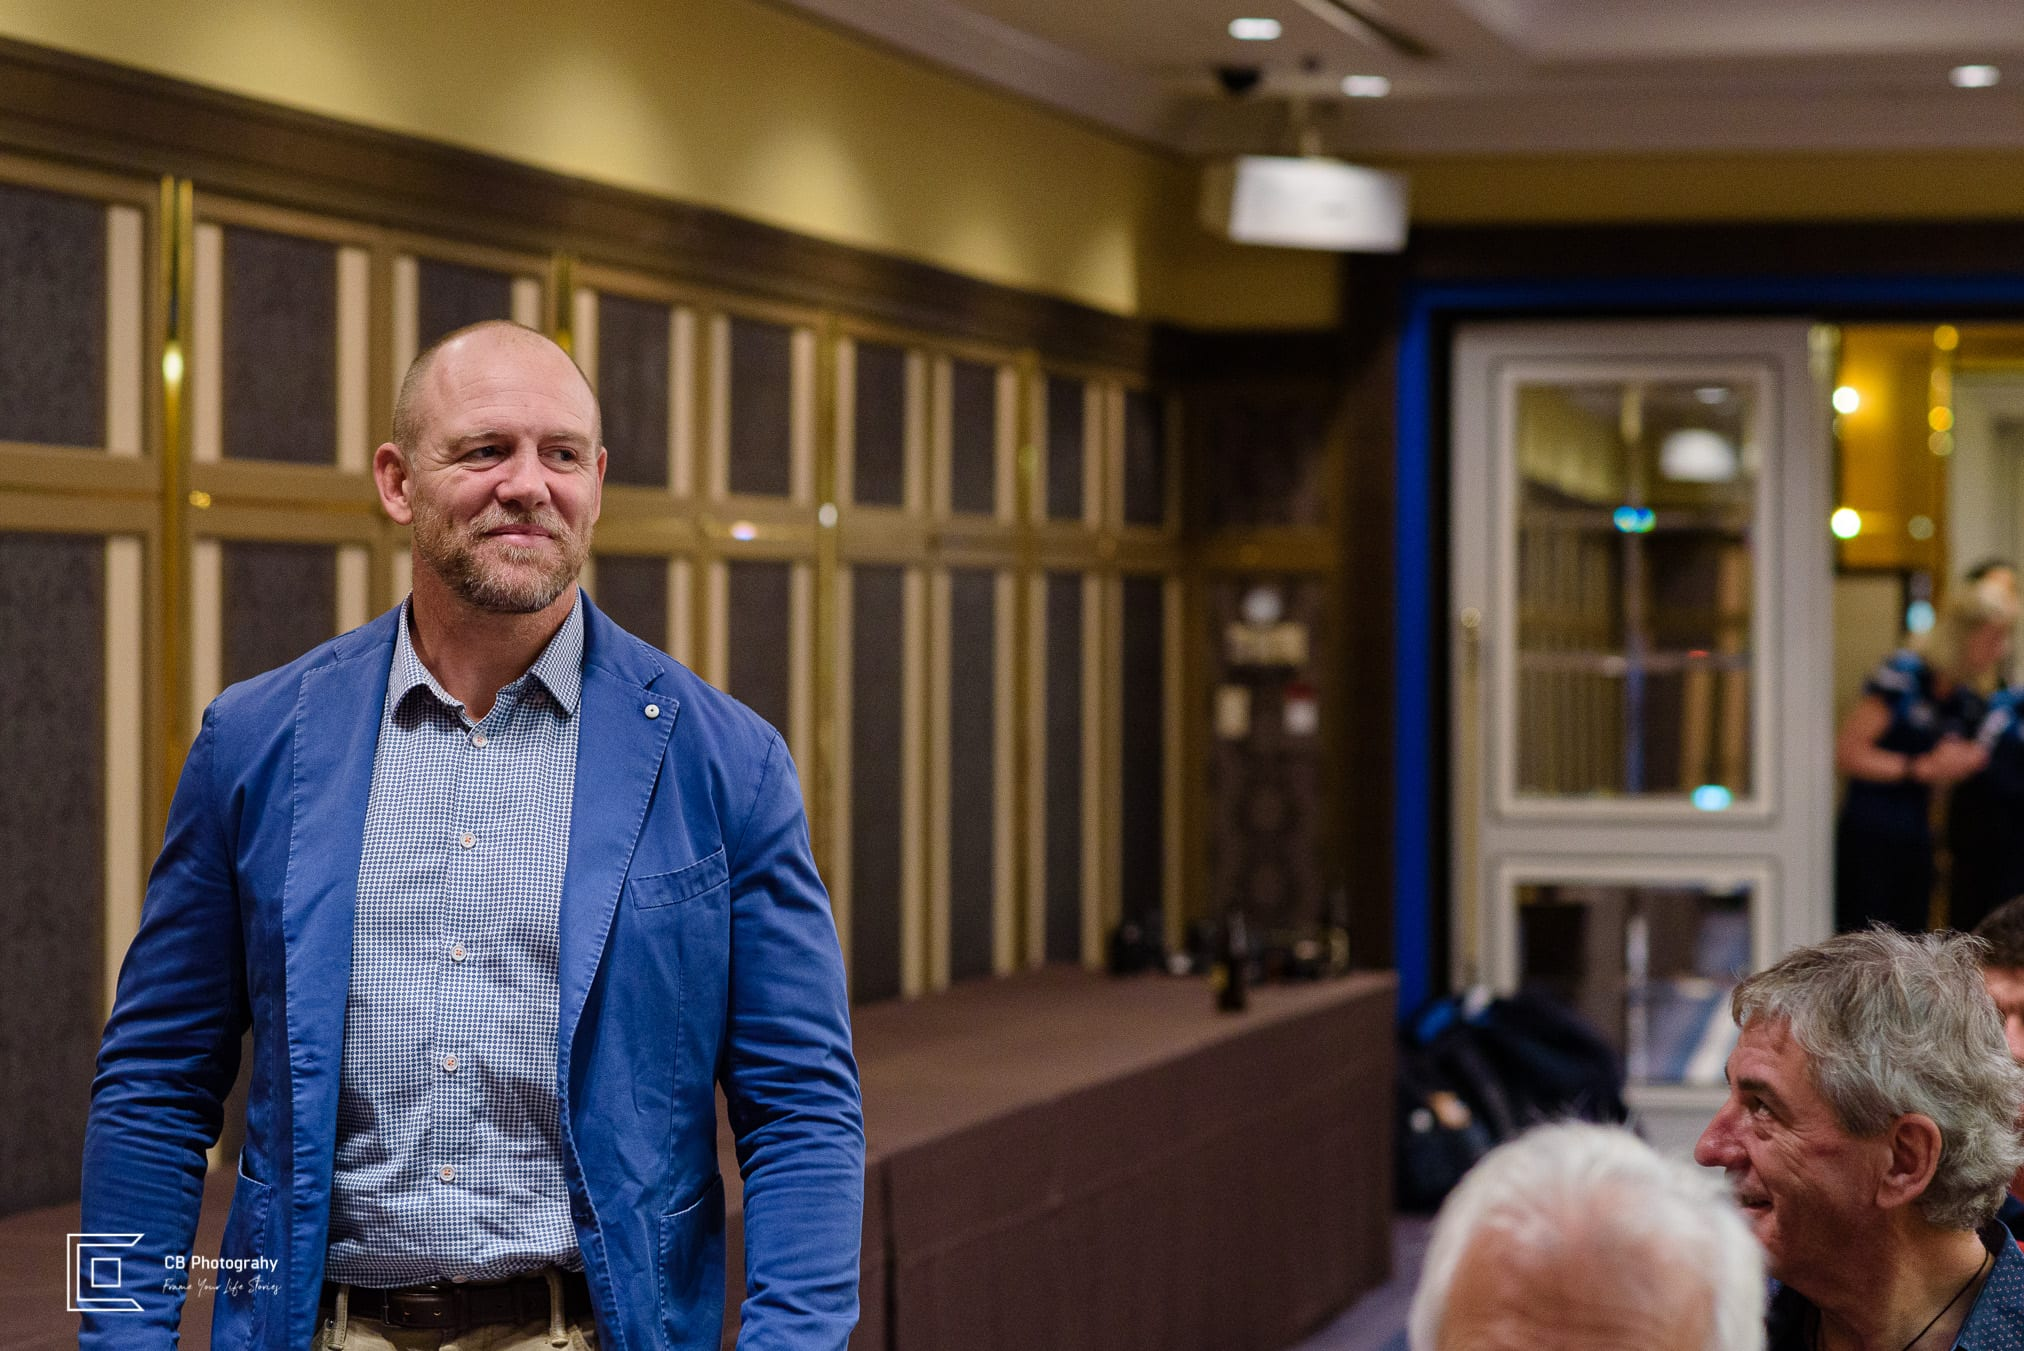 Mike Tindal during an event in Japan, by Cristian Bucur Photographer in Tokyo